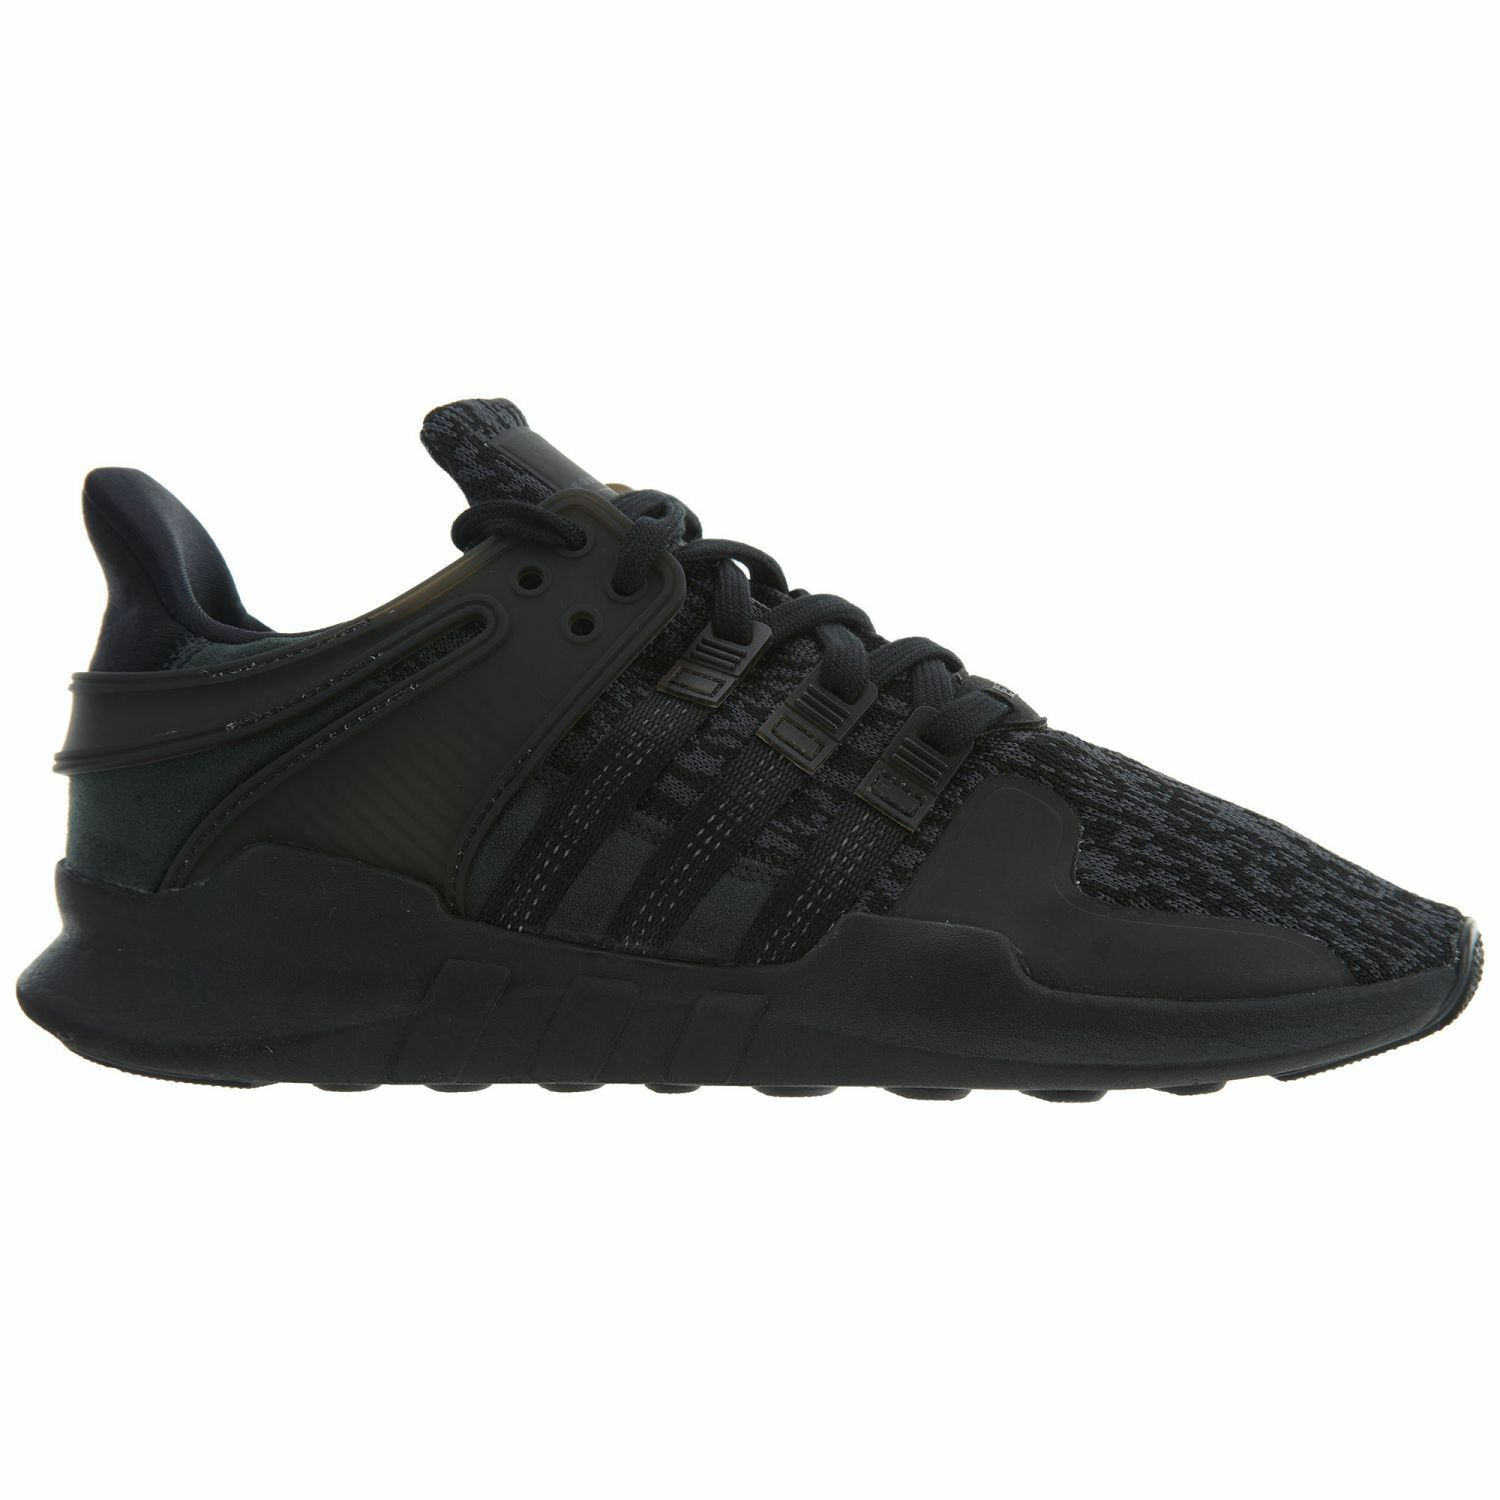 Adidas EQT Support Adv Mens BY9589 Black Pixel Knit Athletic Shoes Size 9.5